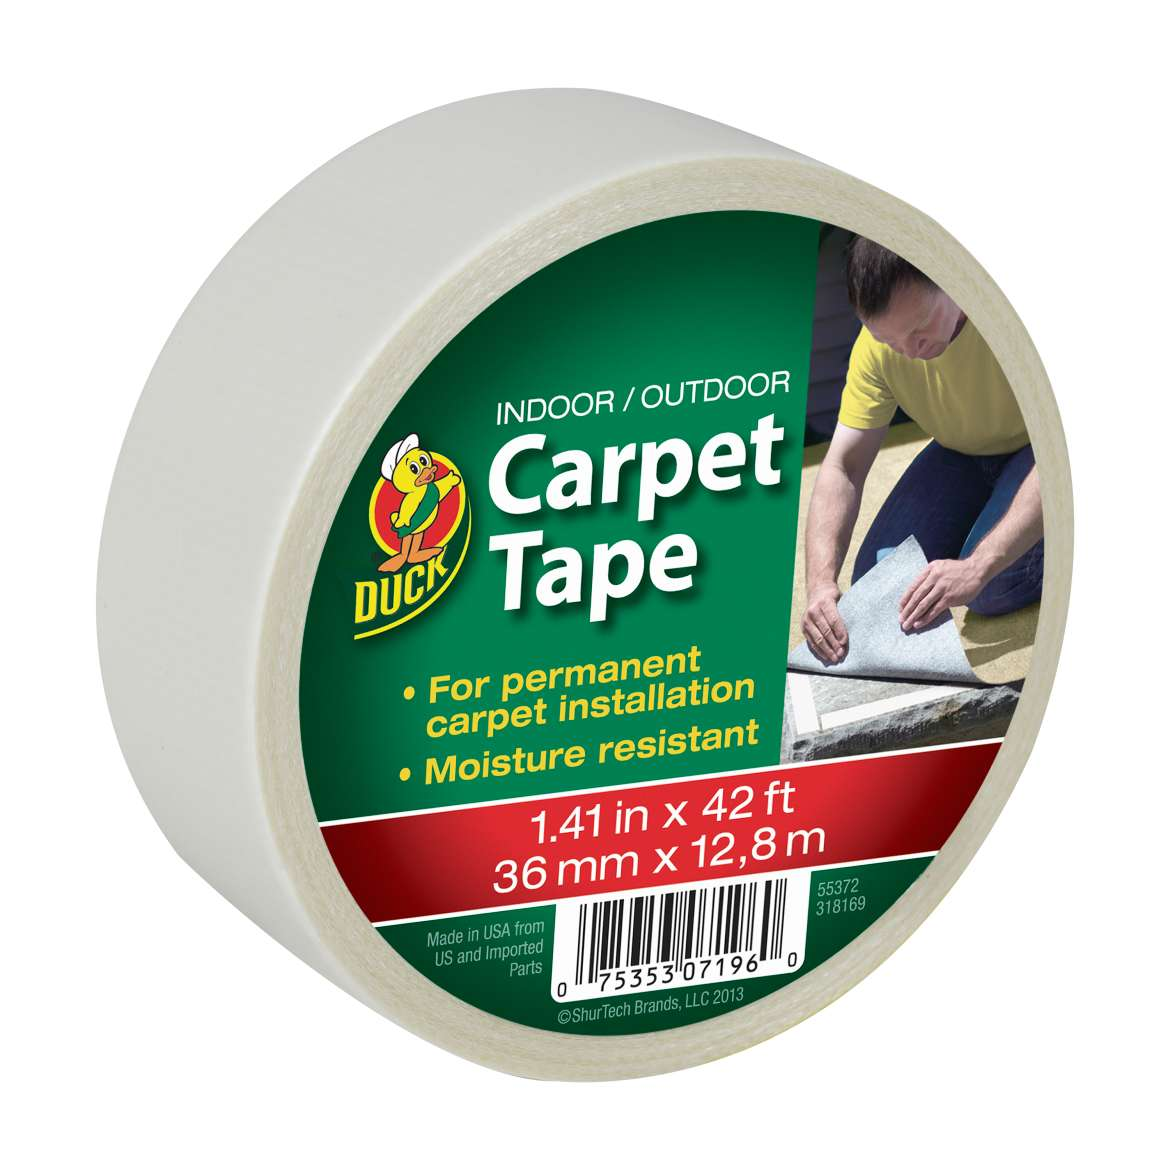 Duck® Brand Indoor/Outdoor Carpet Tape - White, 1.41 in. x 42 ft. Image